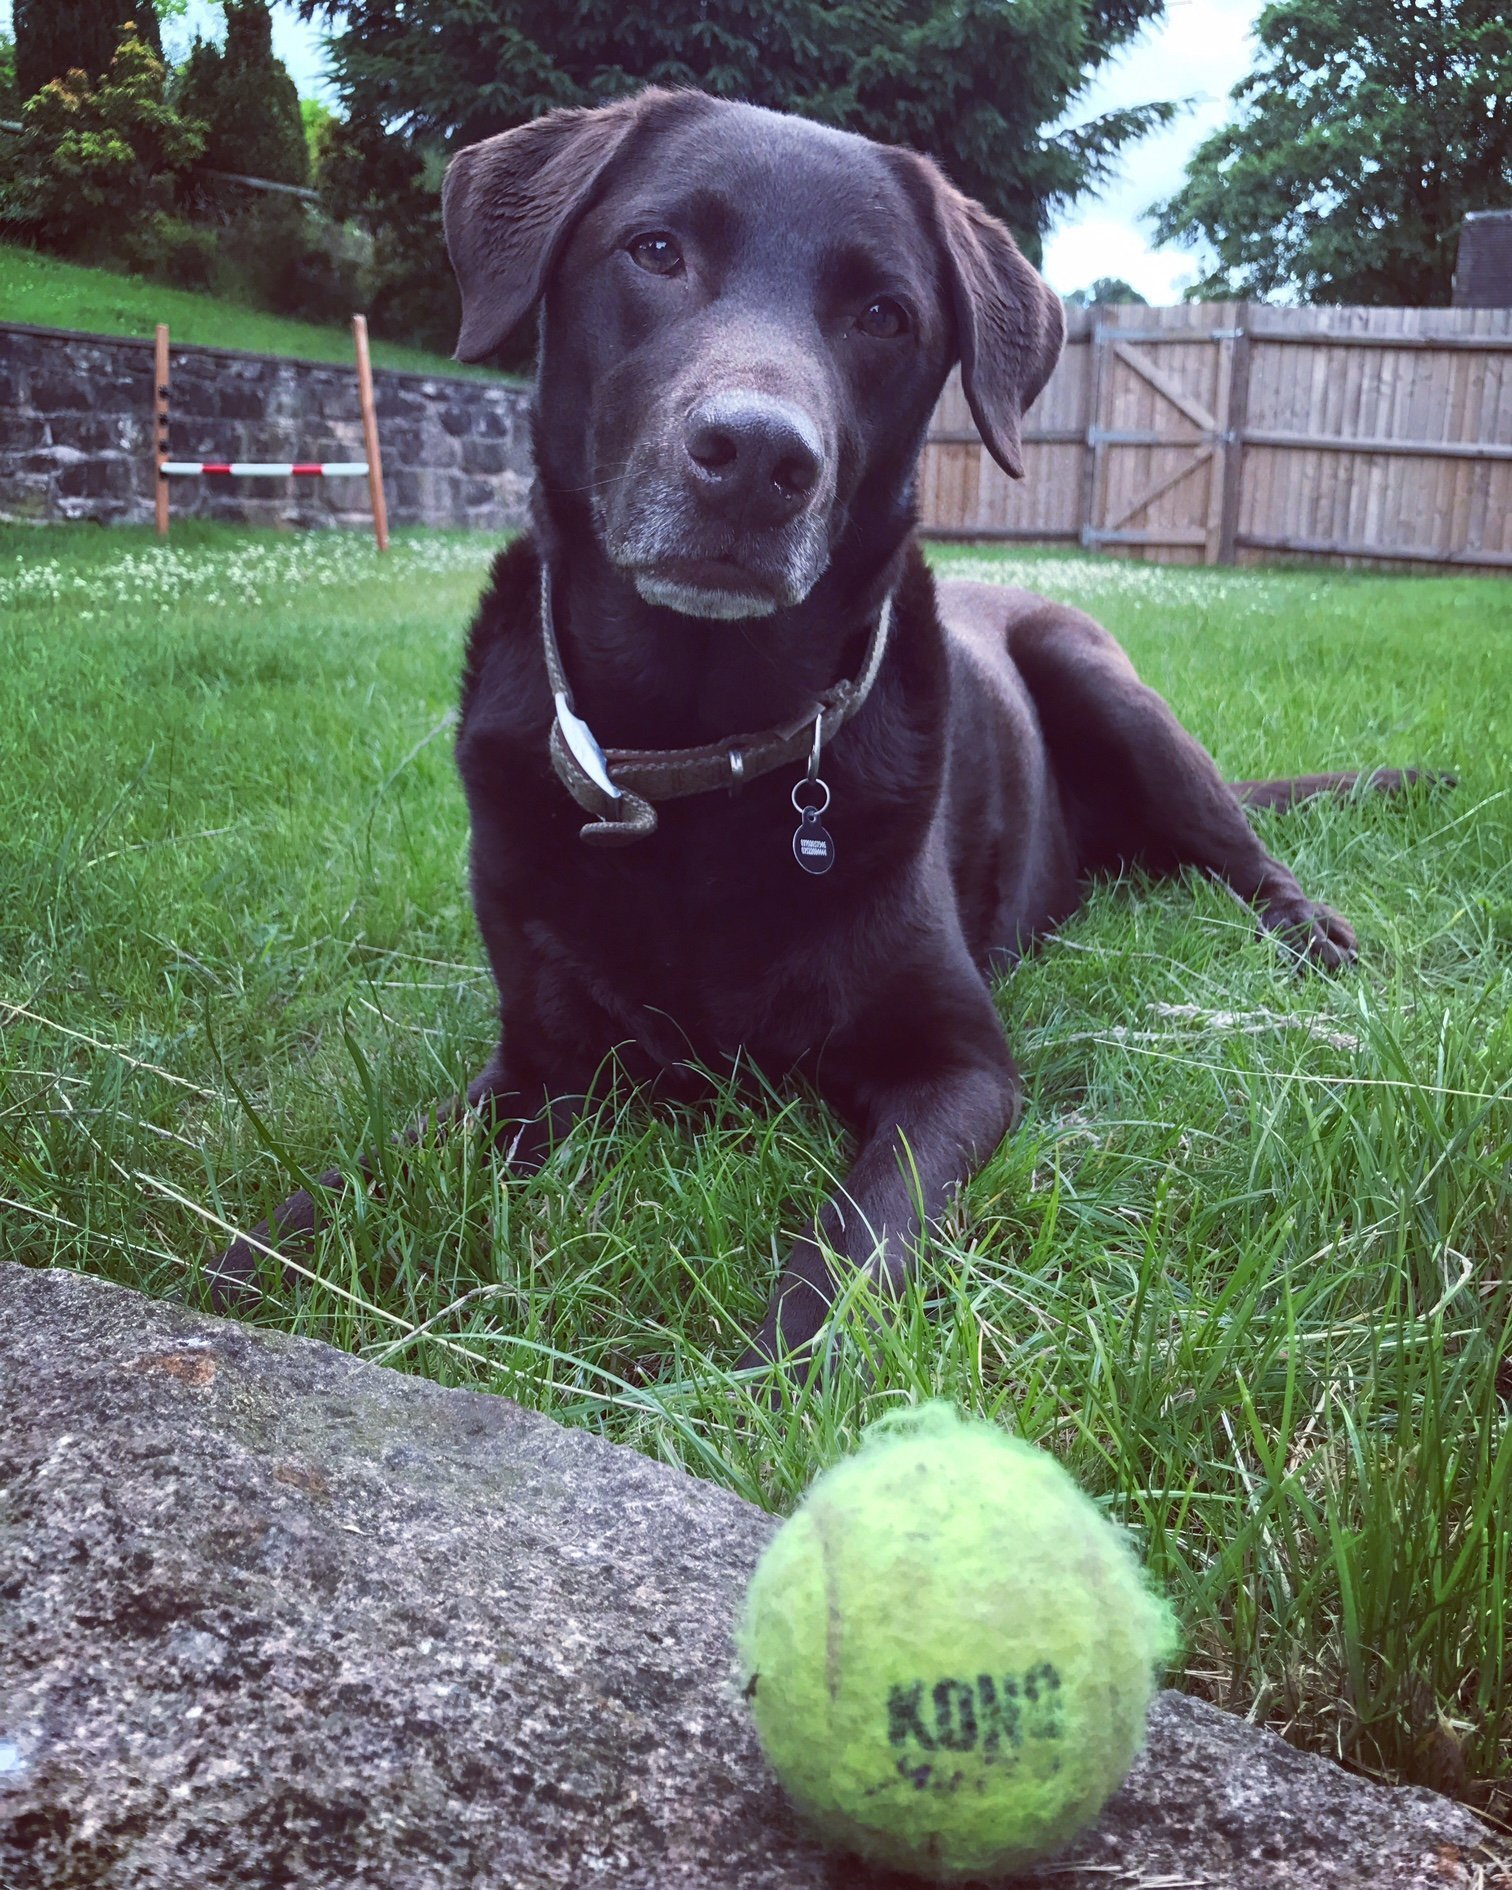 Are tennis balls bad for my dogs teeth? - Quora